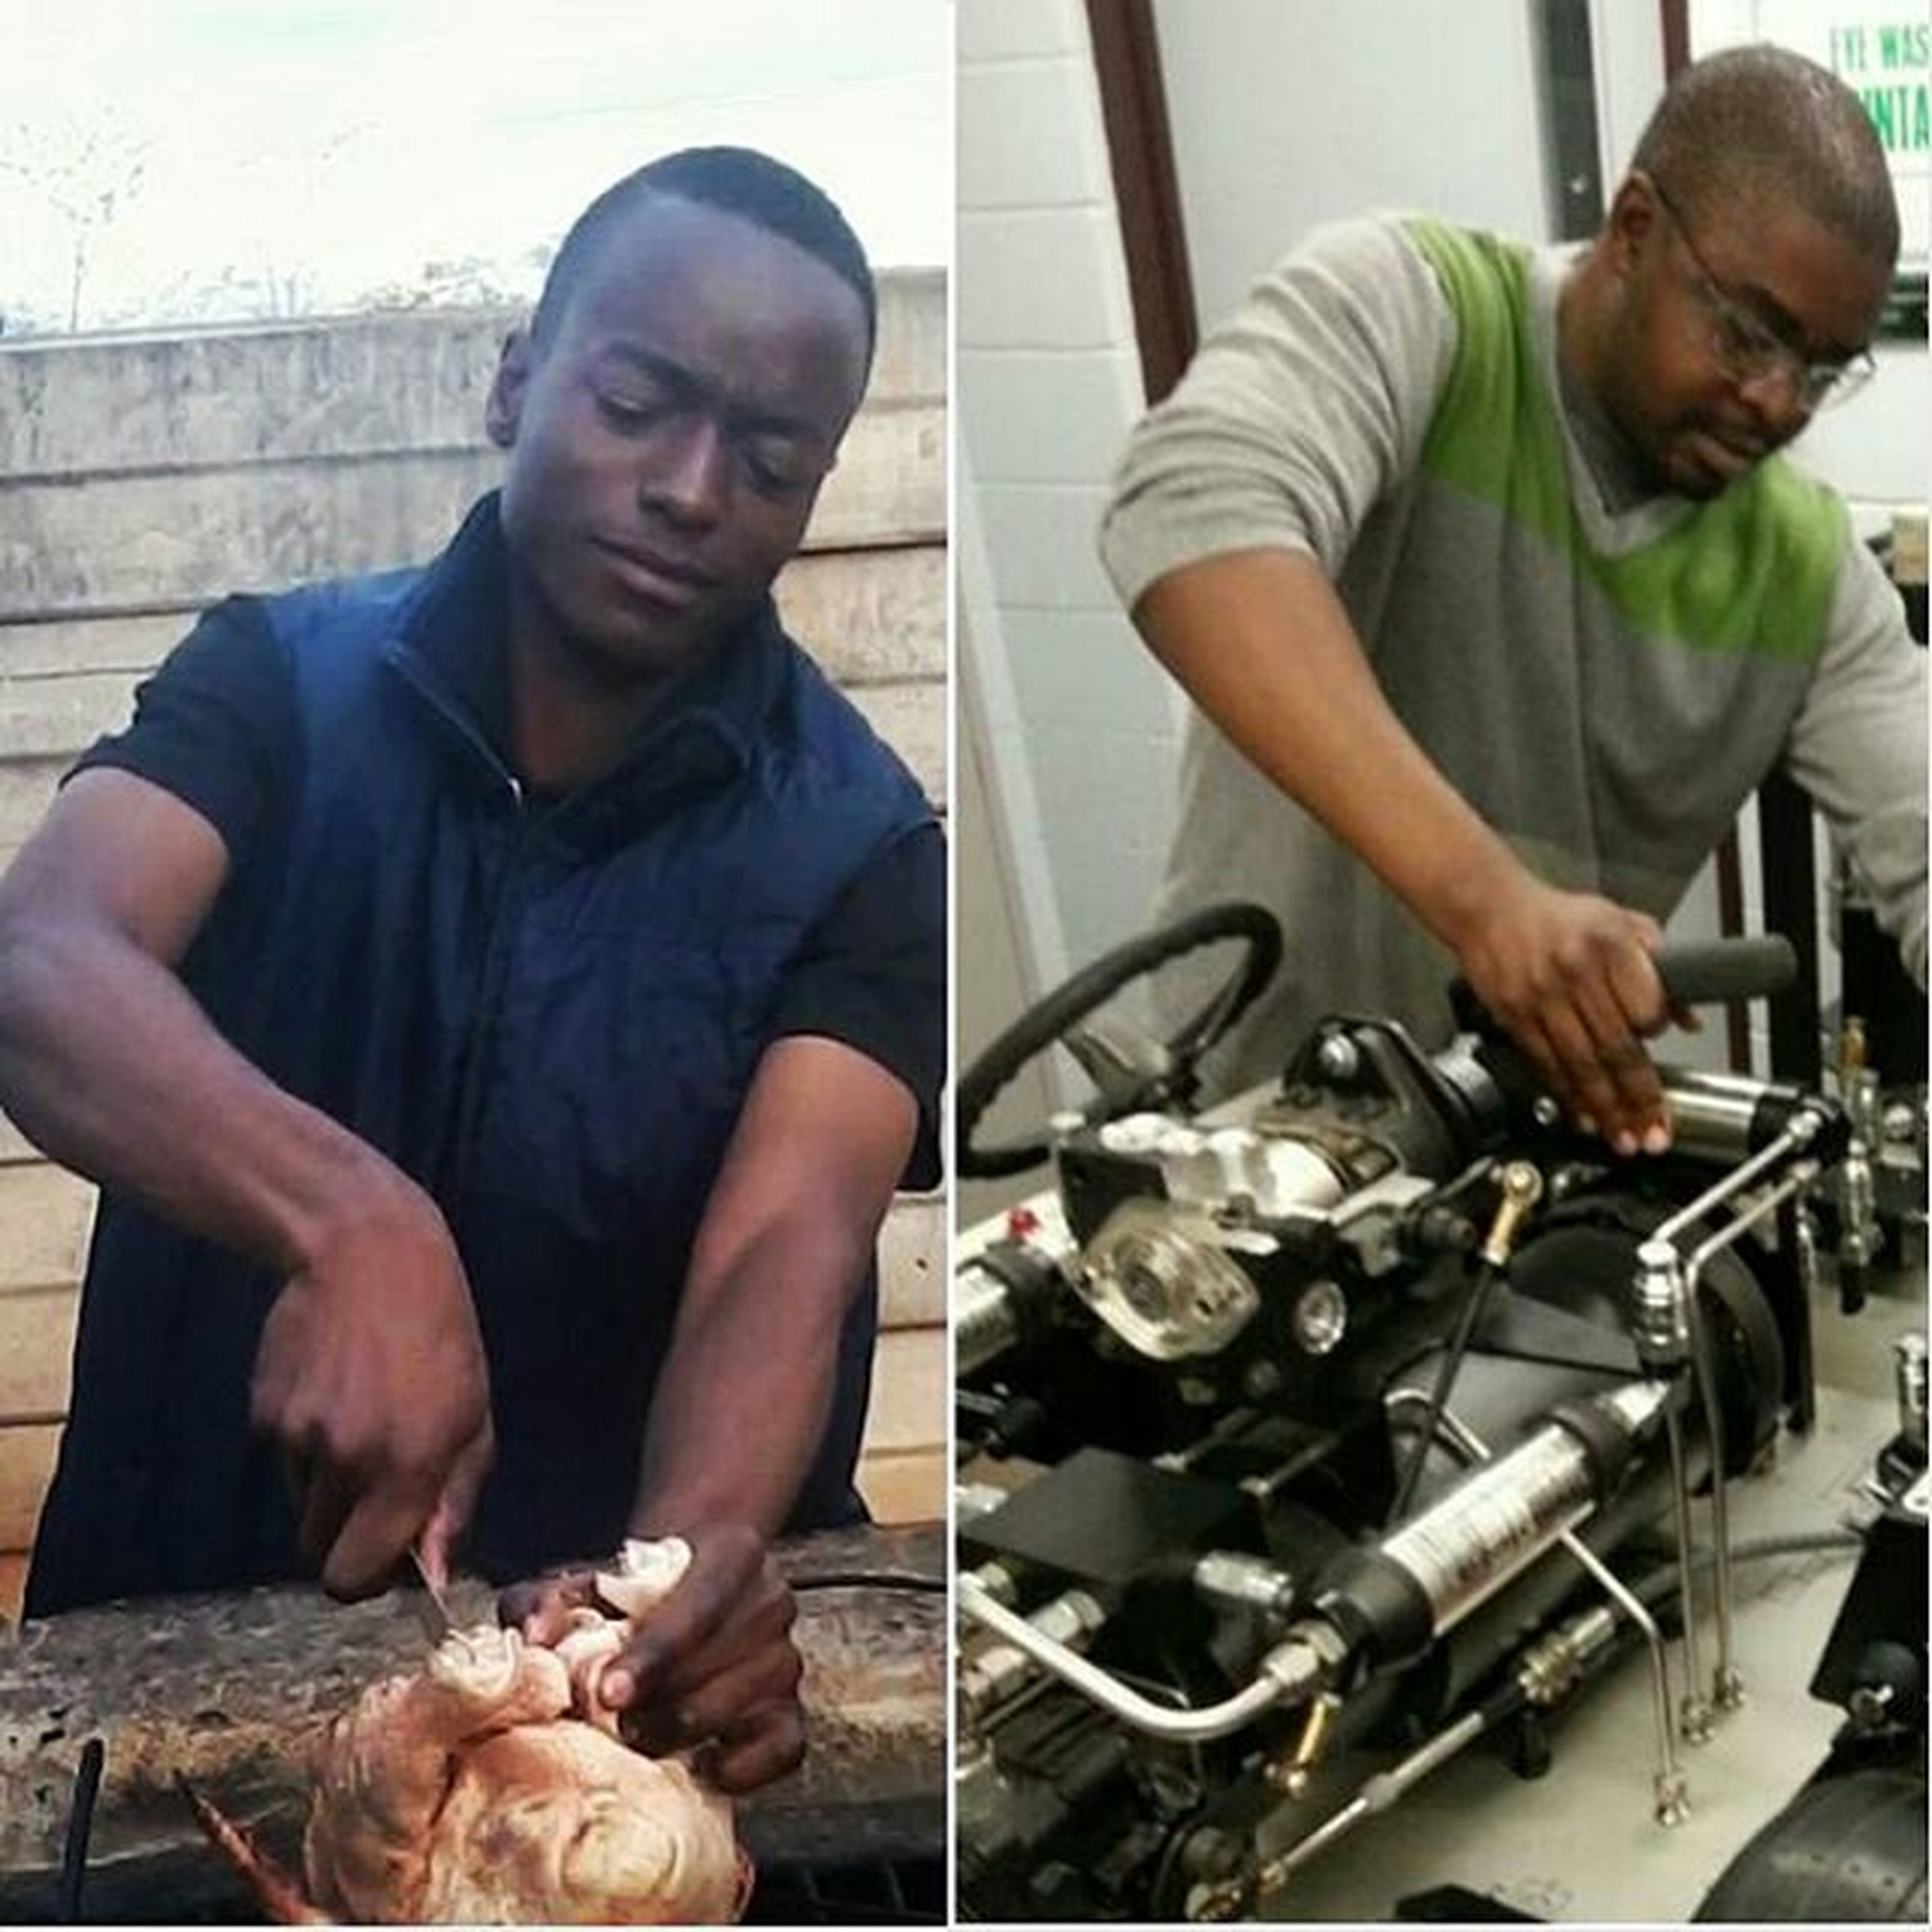 Big bro's lessons on engineering put to good use😬Operatin Chicken SeriousBusiness Braii Actlikeyouknow